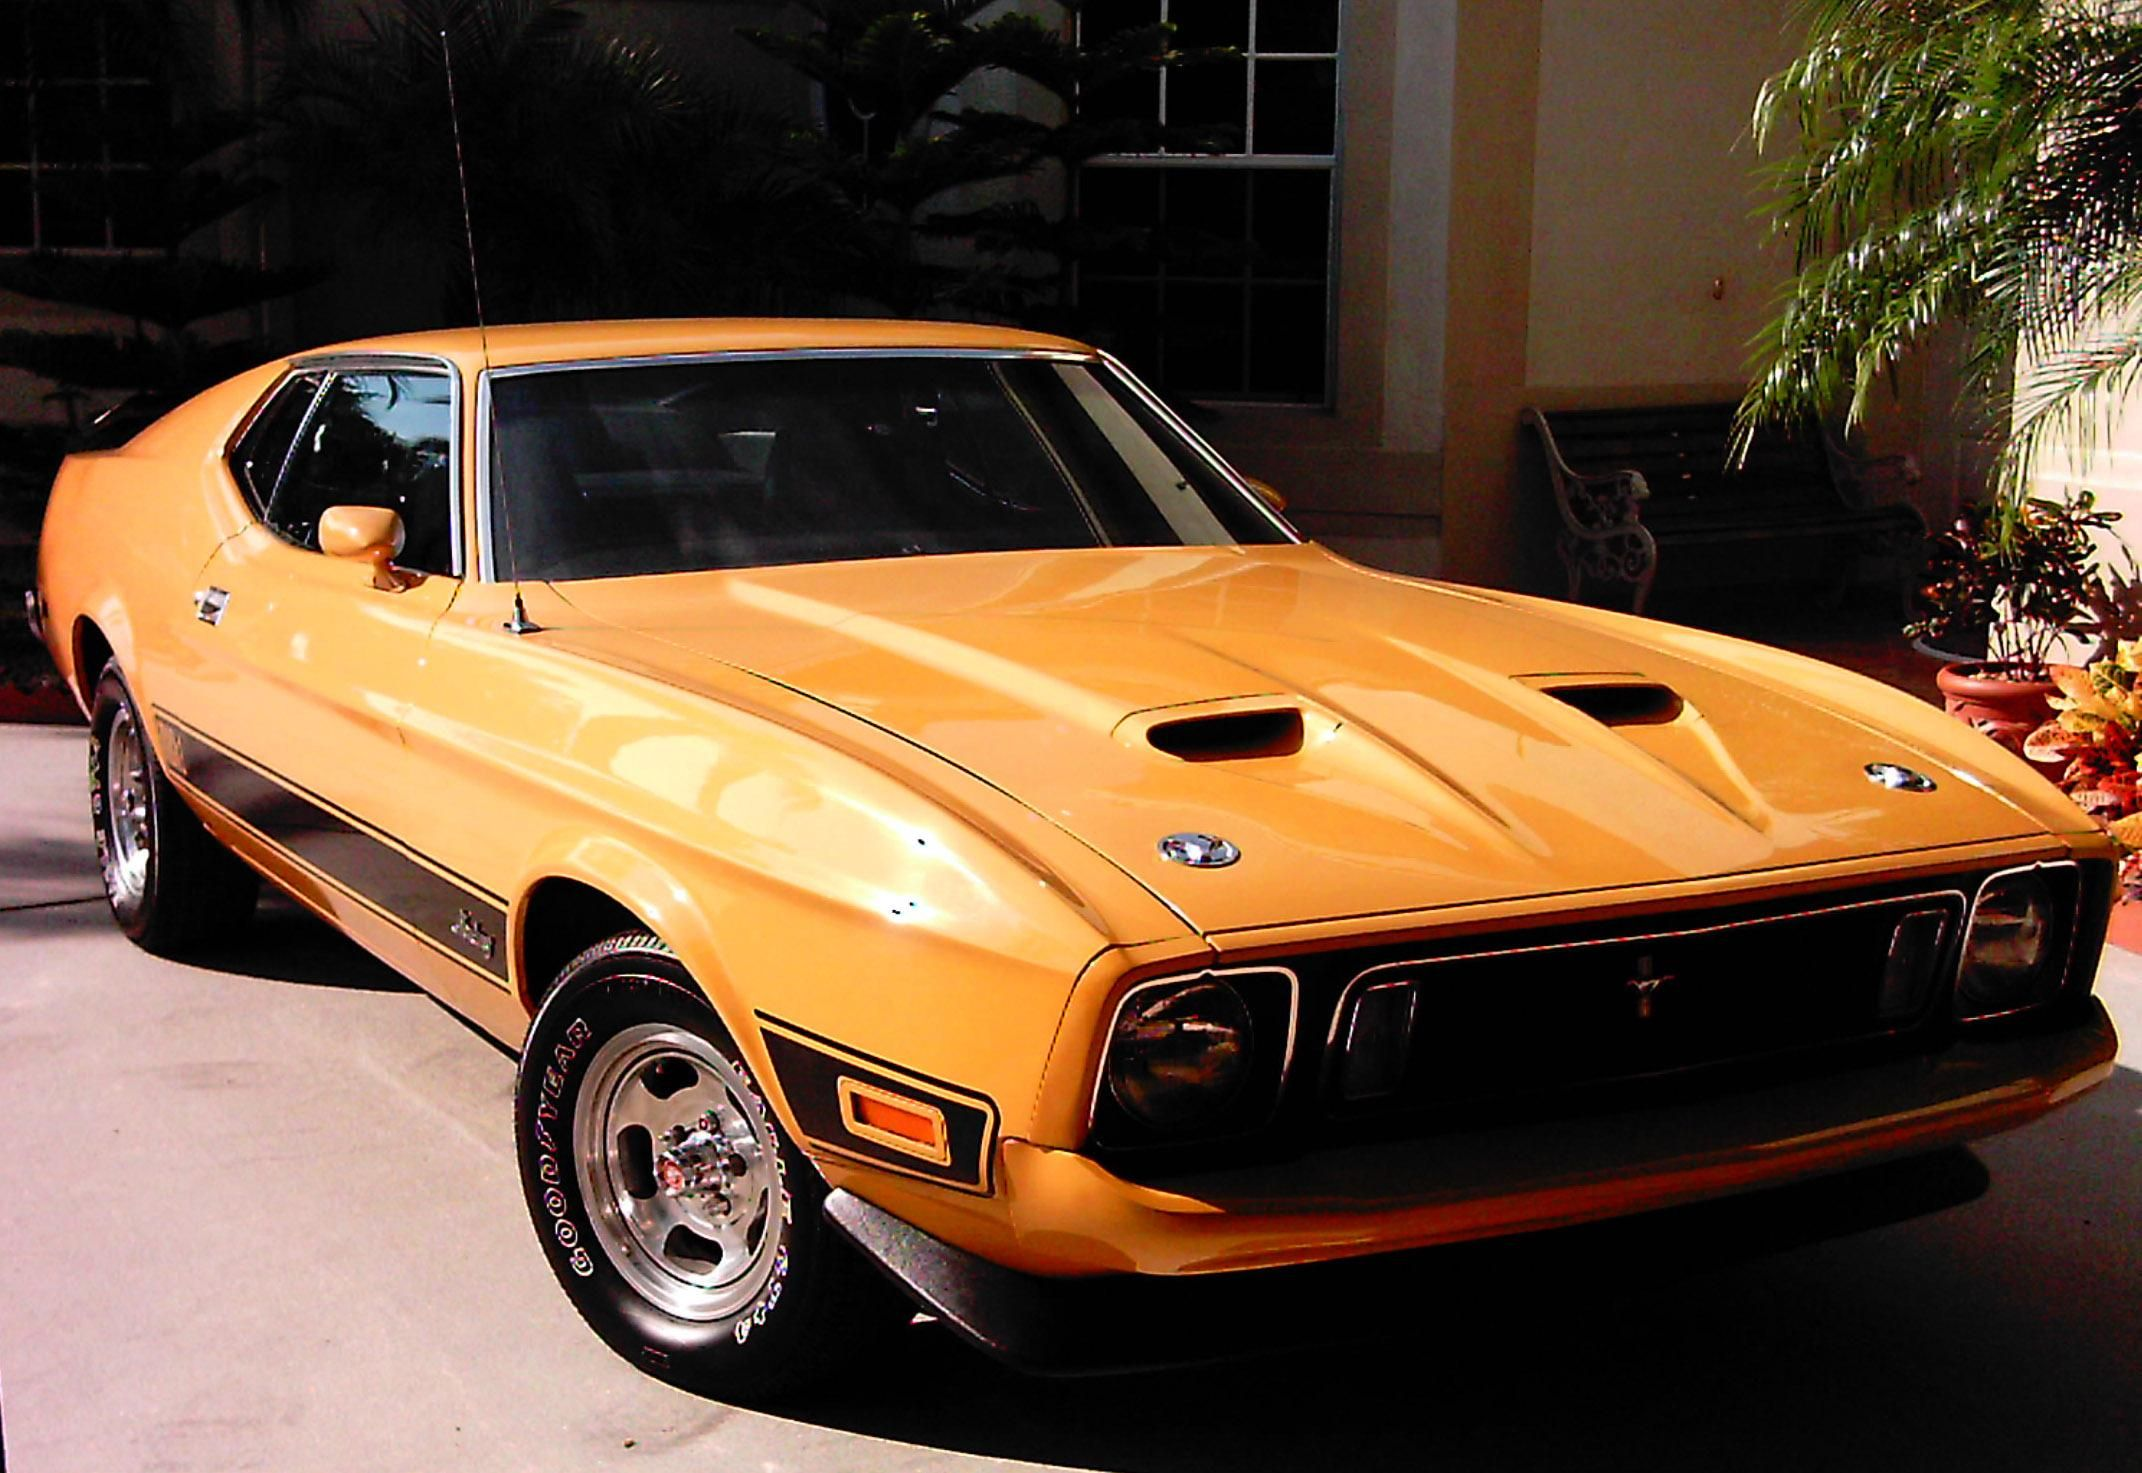 Awesome Muscle Cars Hd Awesome Muscle Car Wallpaper Cars